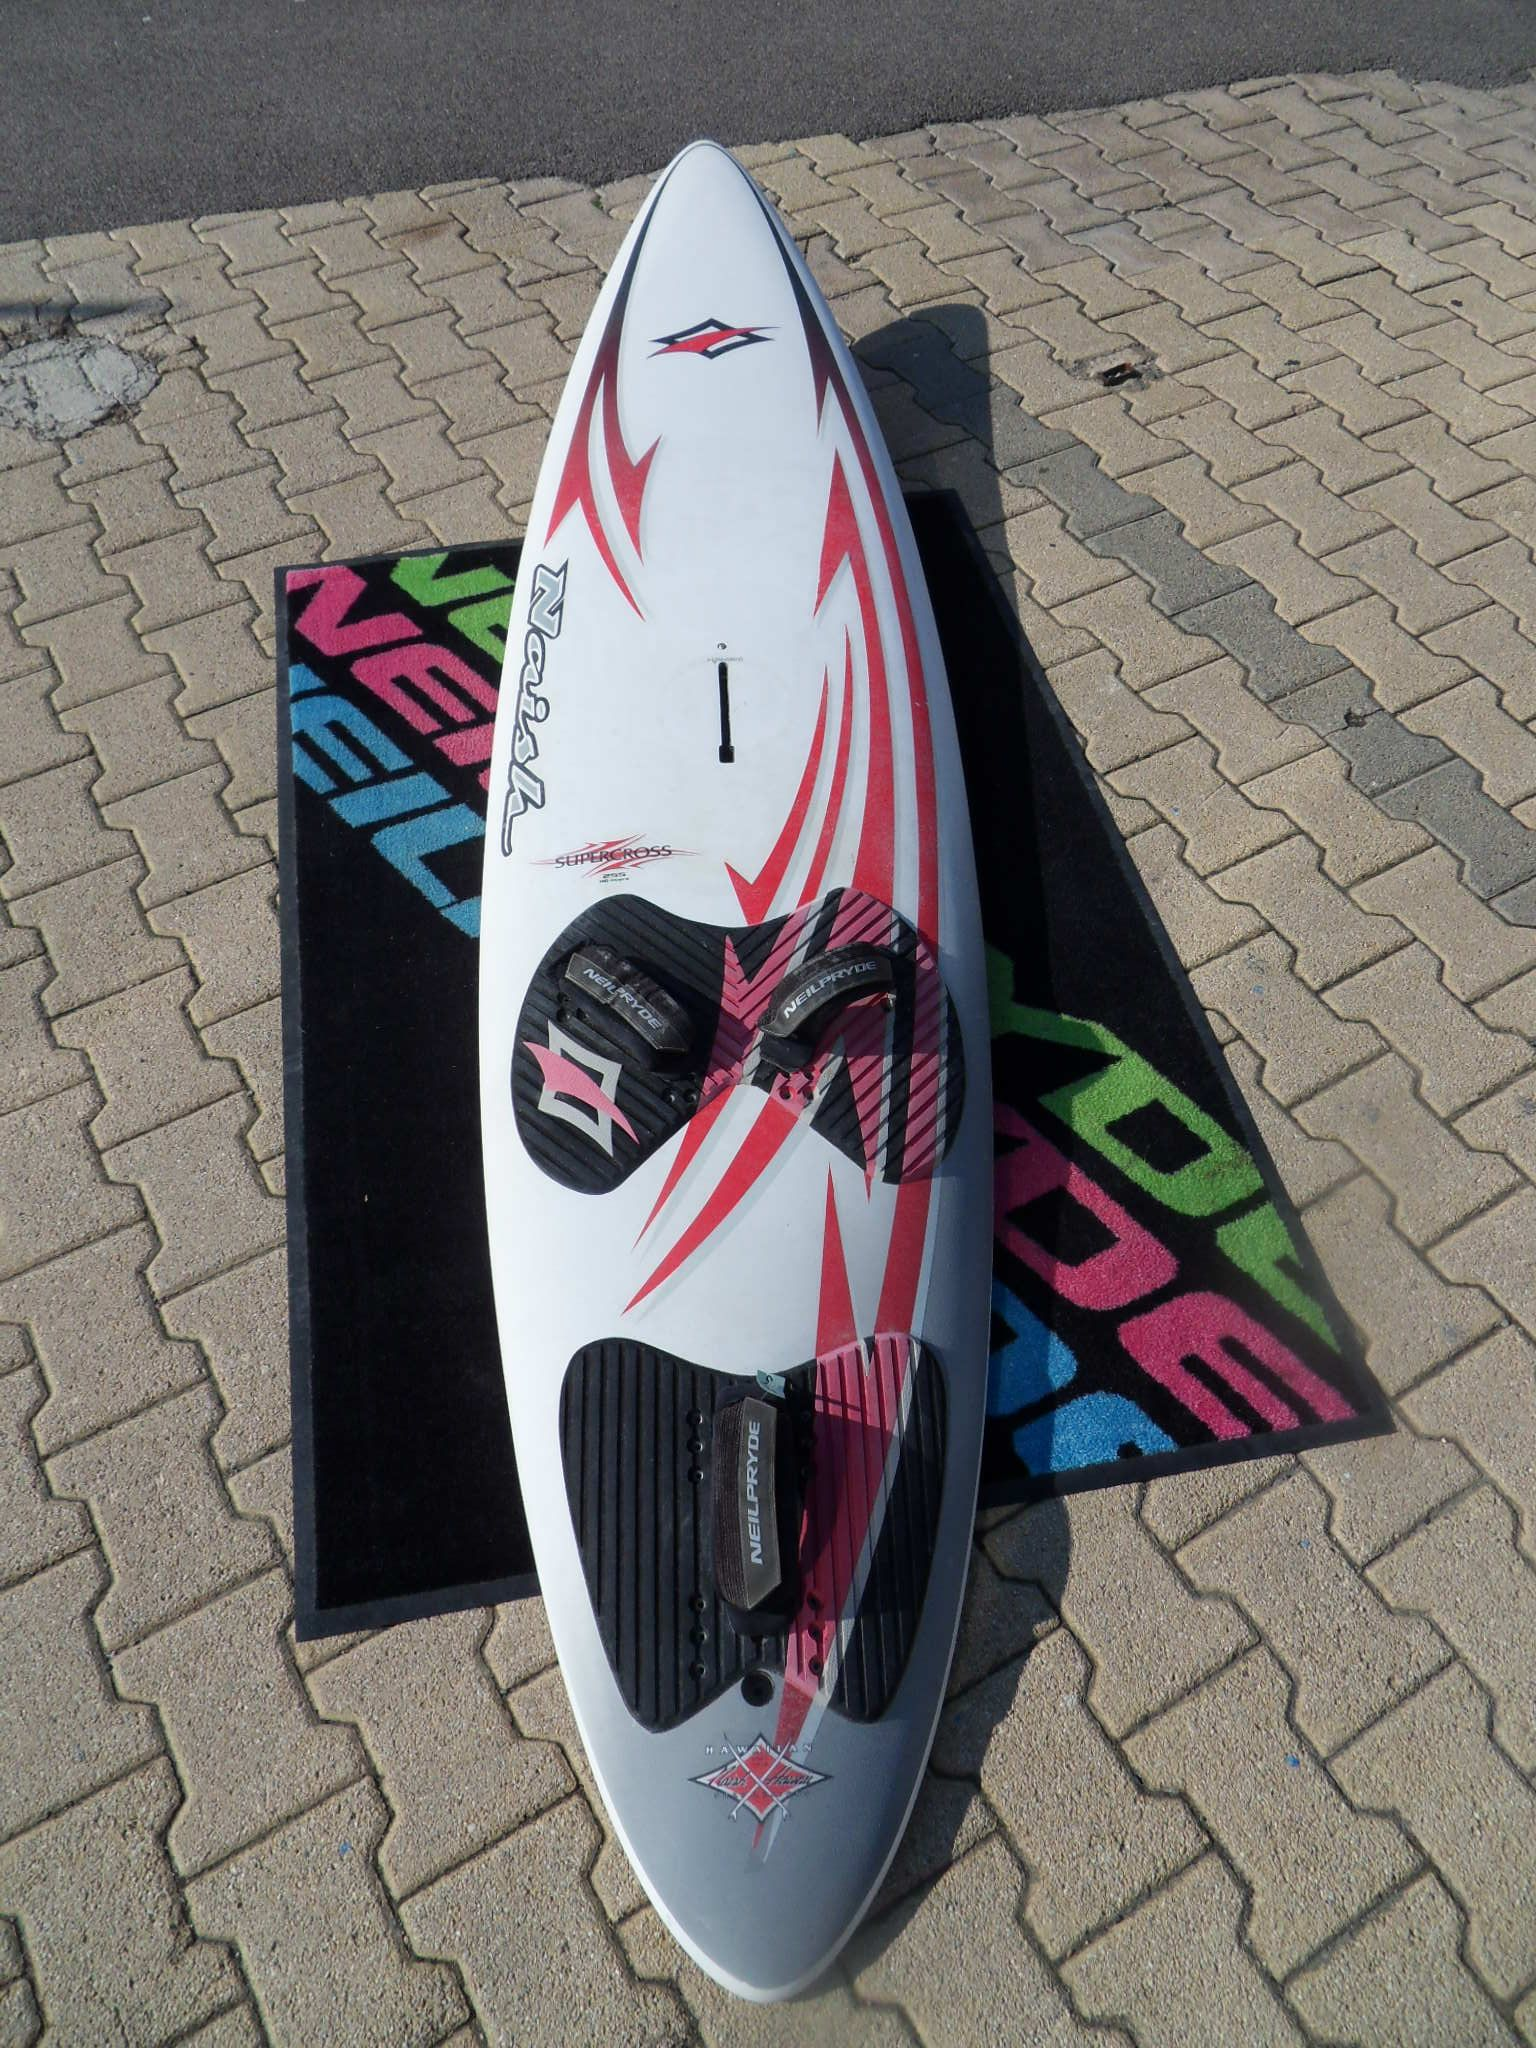 naish supercross 96L 255x62 boitier power bon état 190€